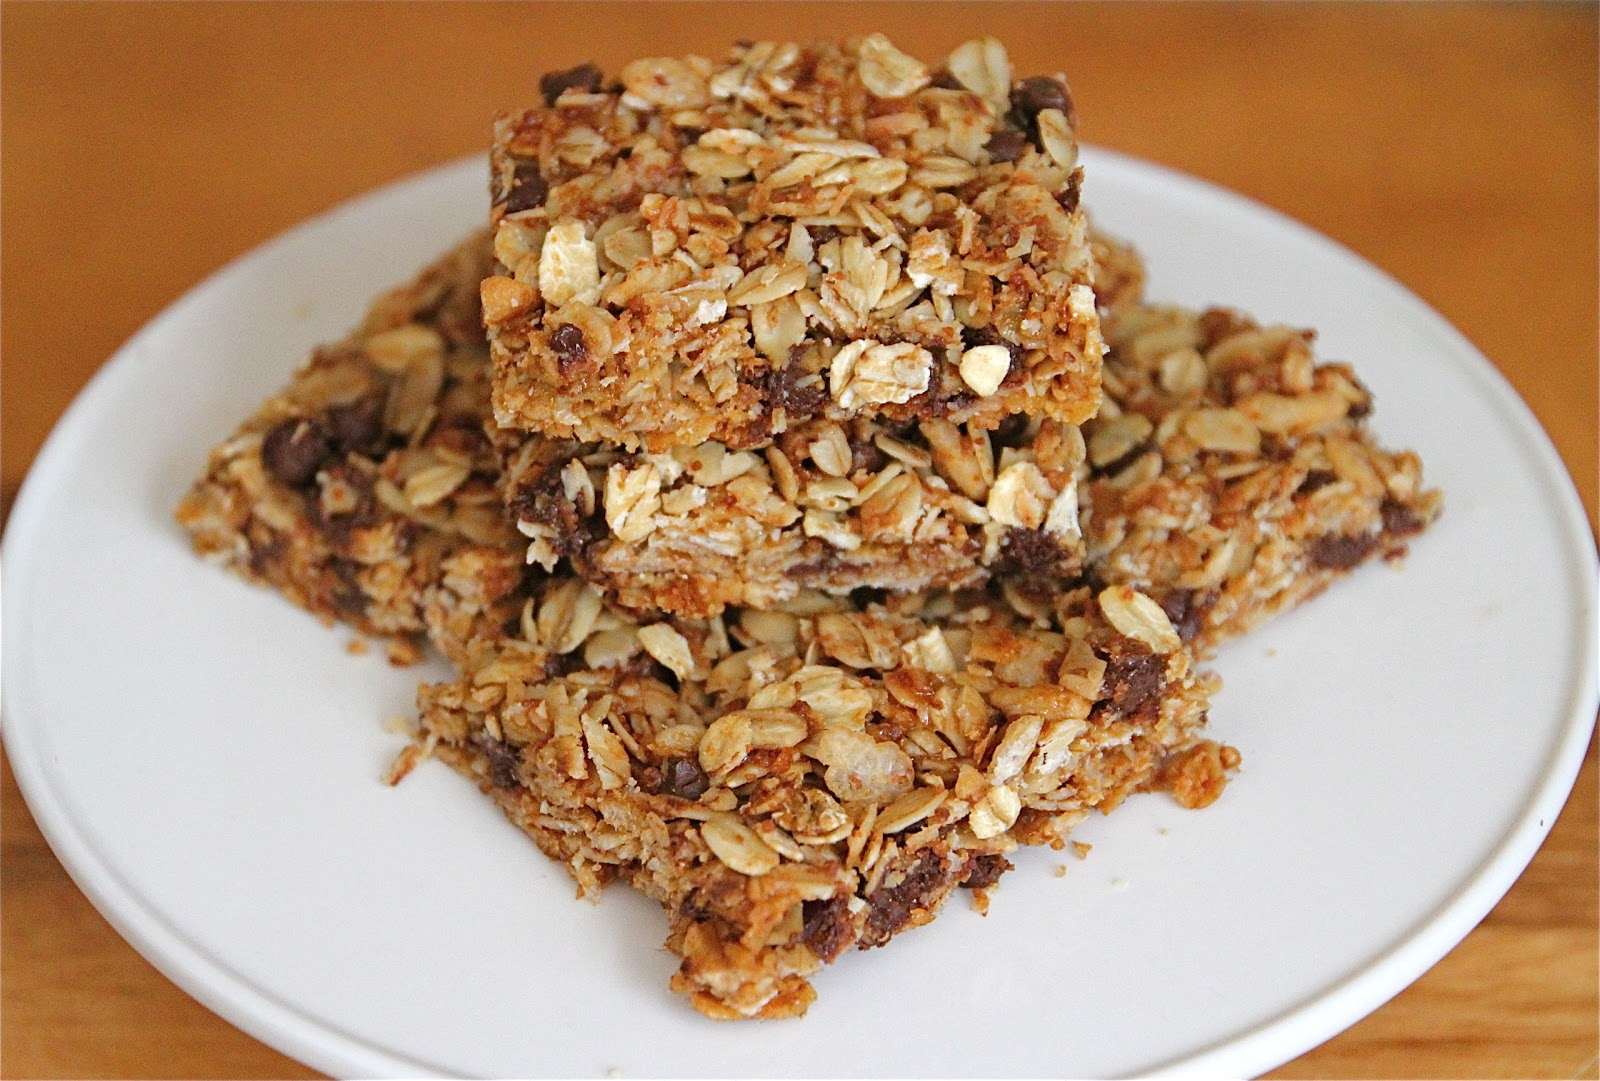 Gluten-Free Chewy Chocolate Chip Granola Bars